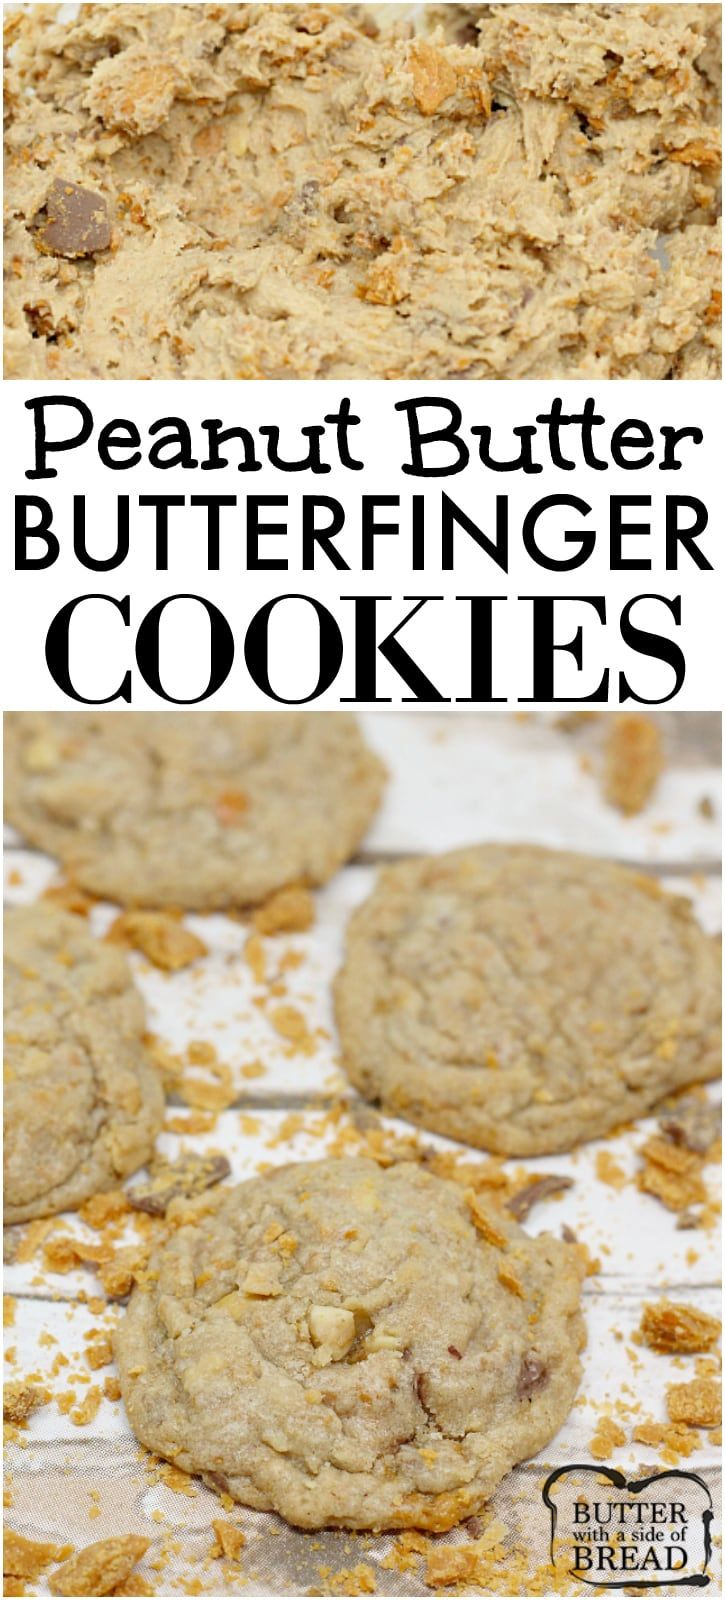 PEANUT BUTTER BUTTERFINGER COOKIES Butter with a Side of Bread BUTTER BUTTERFINGER COOKIES  Butter with a Side of Bread, butter butterfinger cookies, Peanut Butter Cookies  Better in Bulk.Read More About This Recipe  Click here